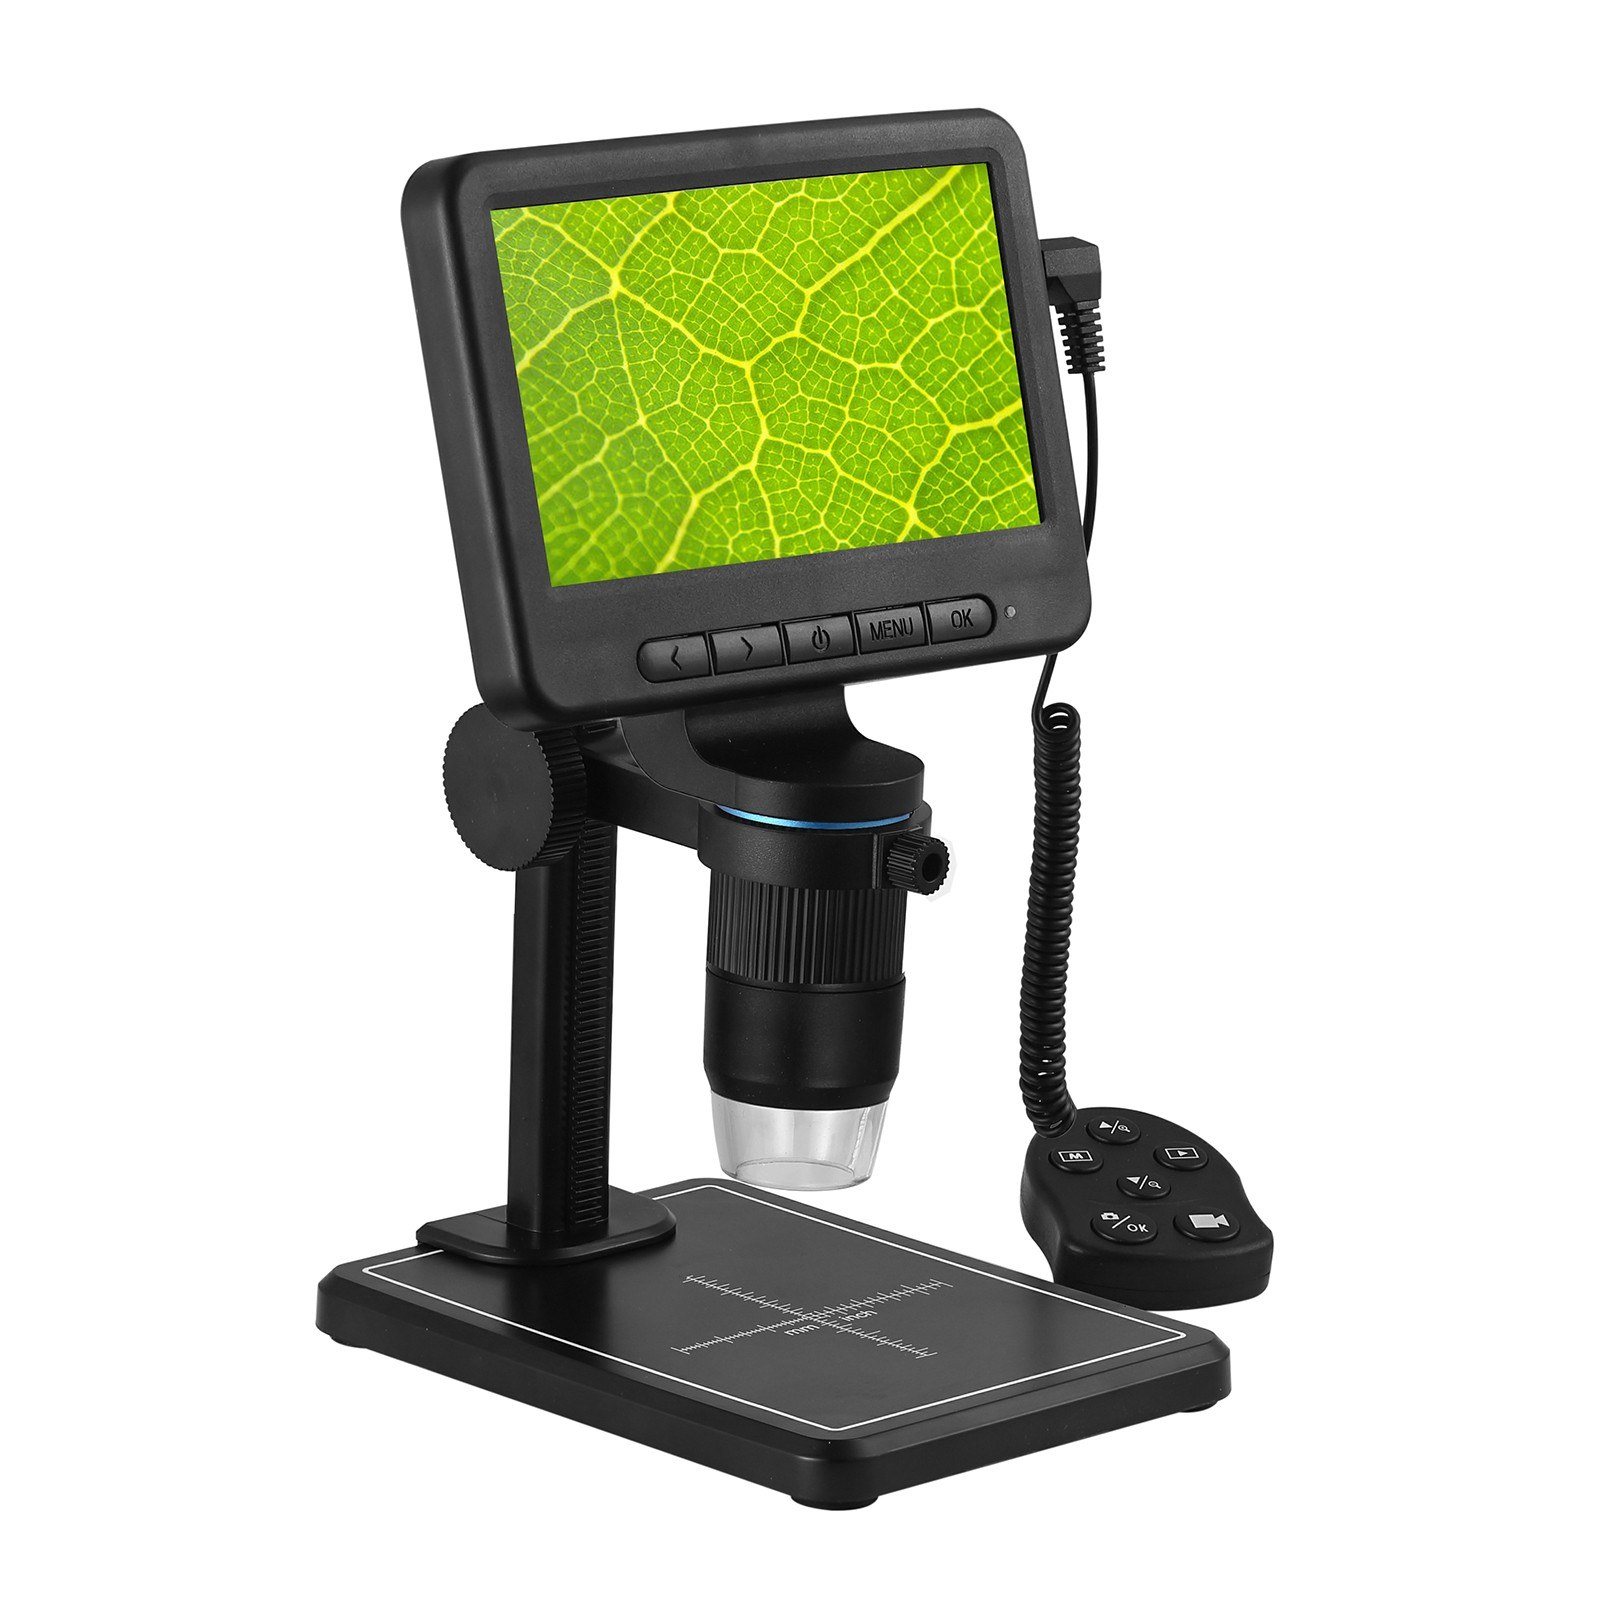 Tomtop - 40% OFF KKmoon 5 Inch LCD Digital Microscop, Free Shipping $68.19